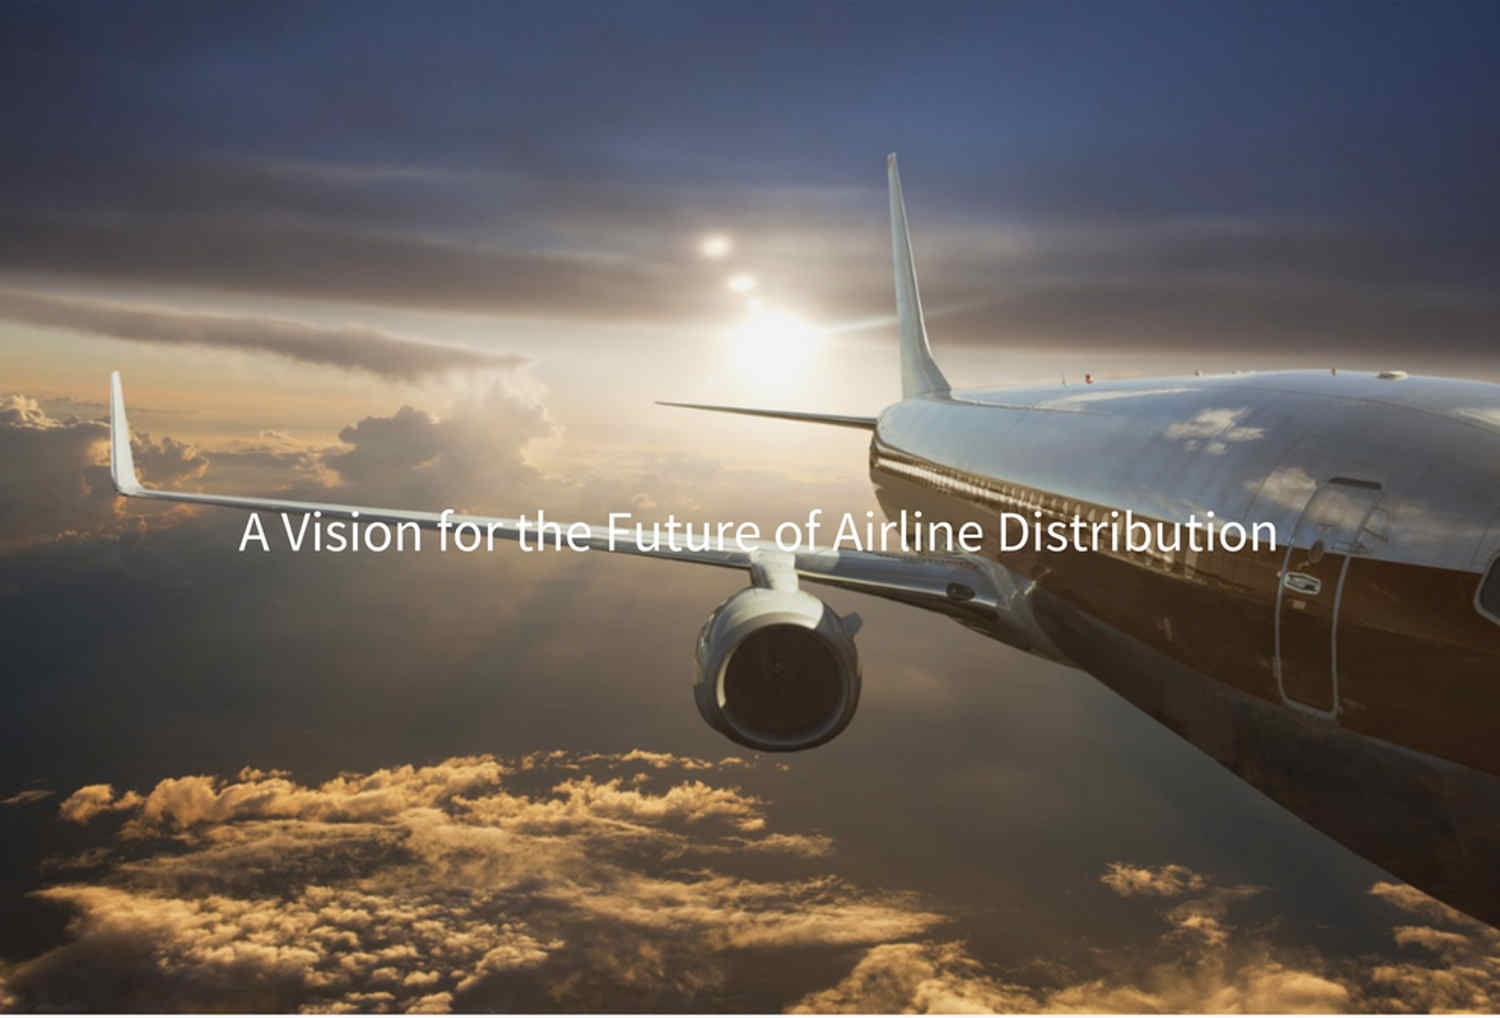 Future of Airline Distribution